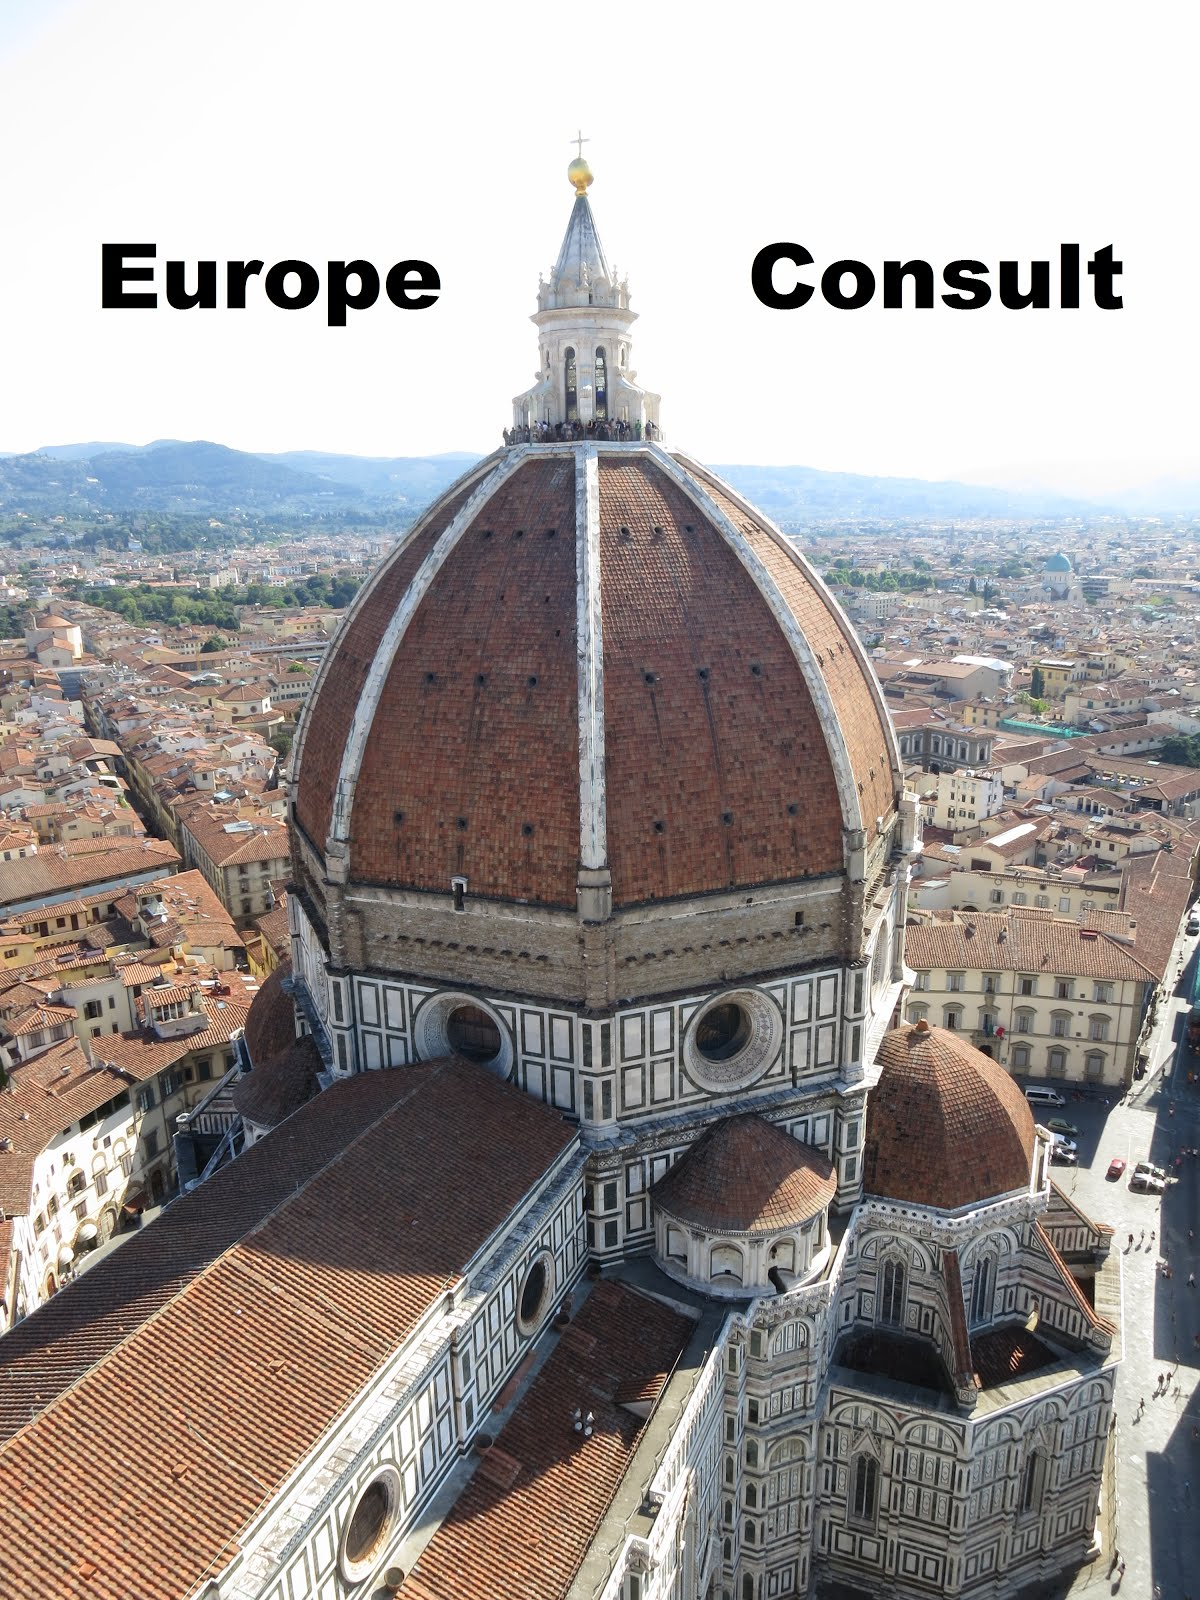 New Travel Blog: Europe Consult - How much does it cost to go to Europe?